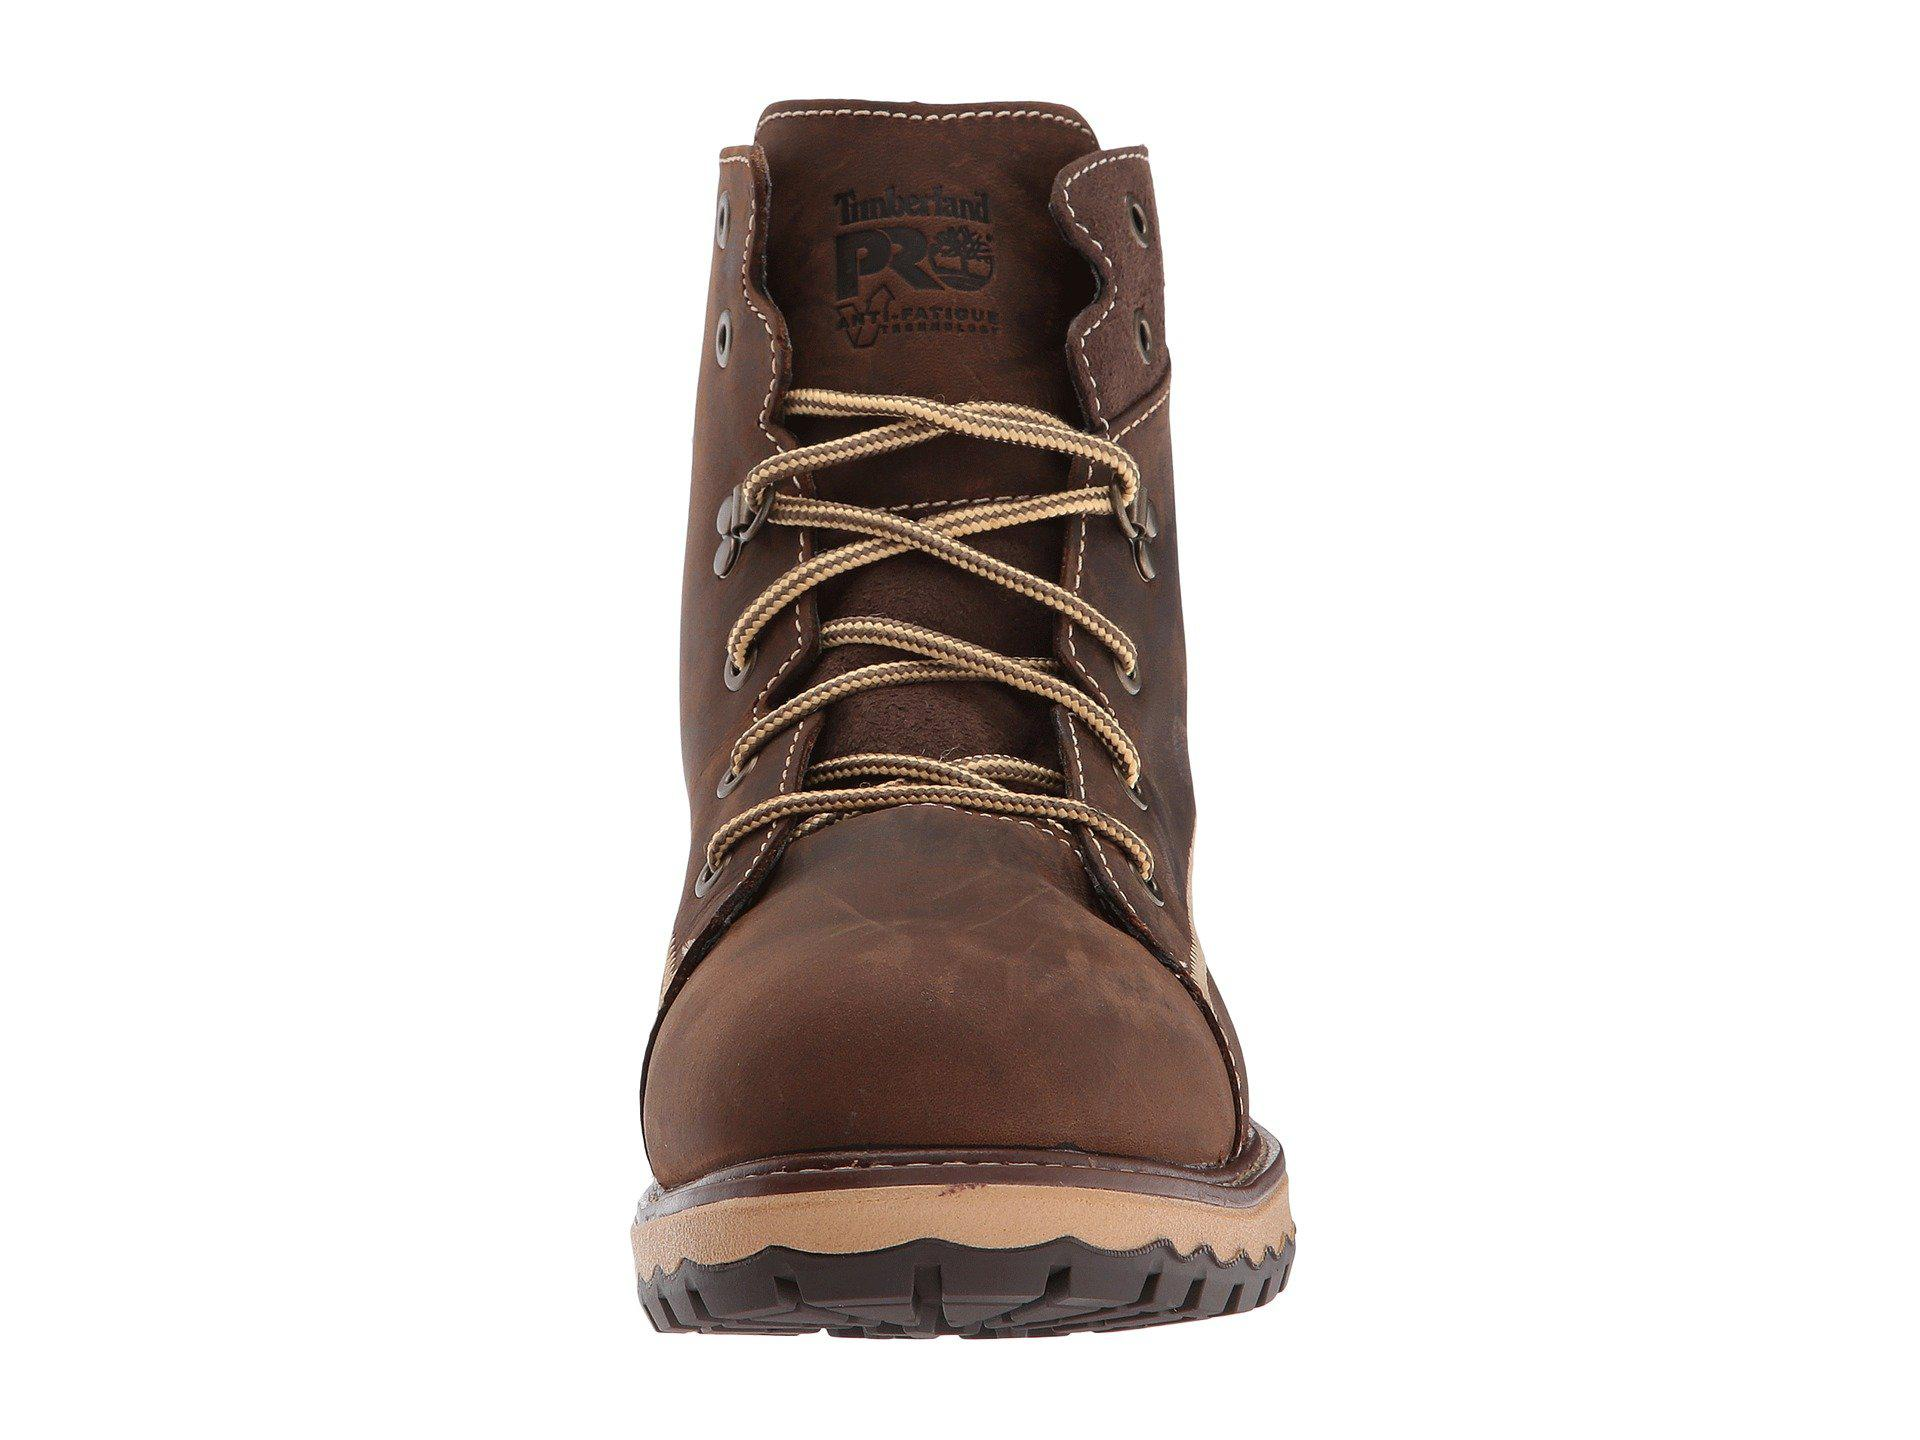 56143633b4f Brown Hightower 6 Alloy Safety Toe (kaffe Full Grain Leather) Women's Work  Lace-up Boots